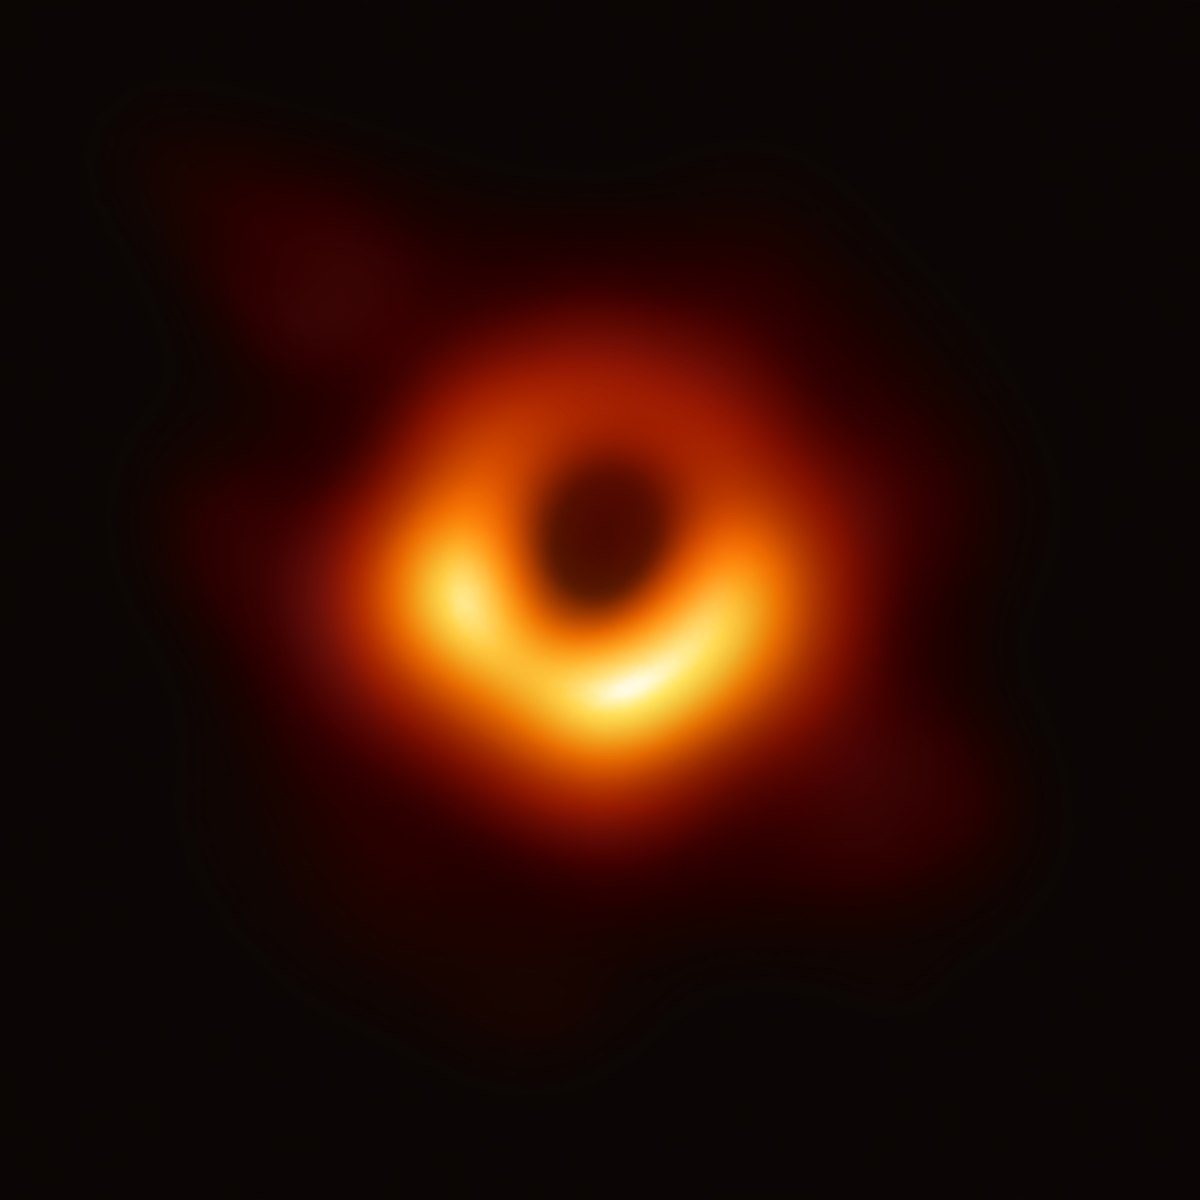 Black hole - Wikipedia